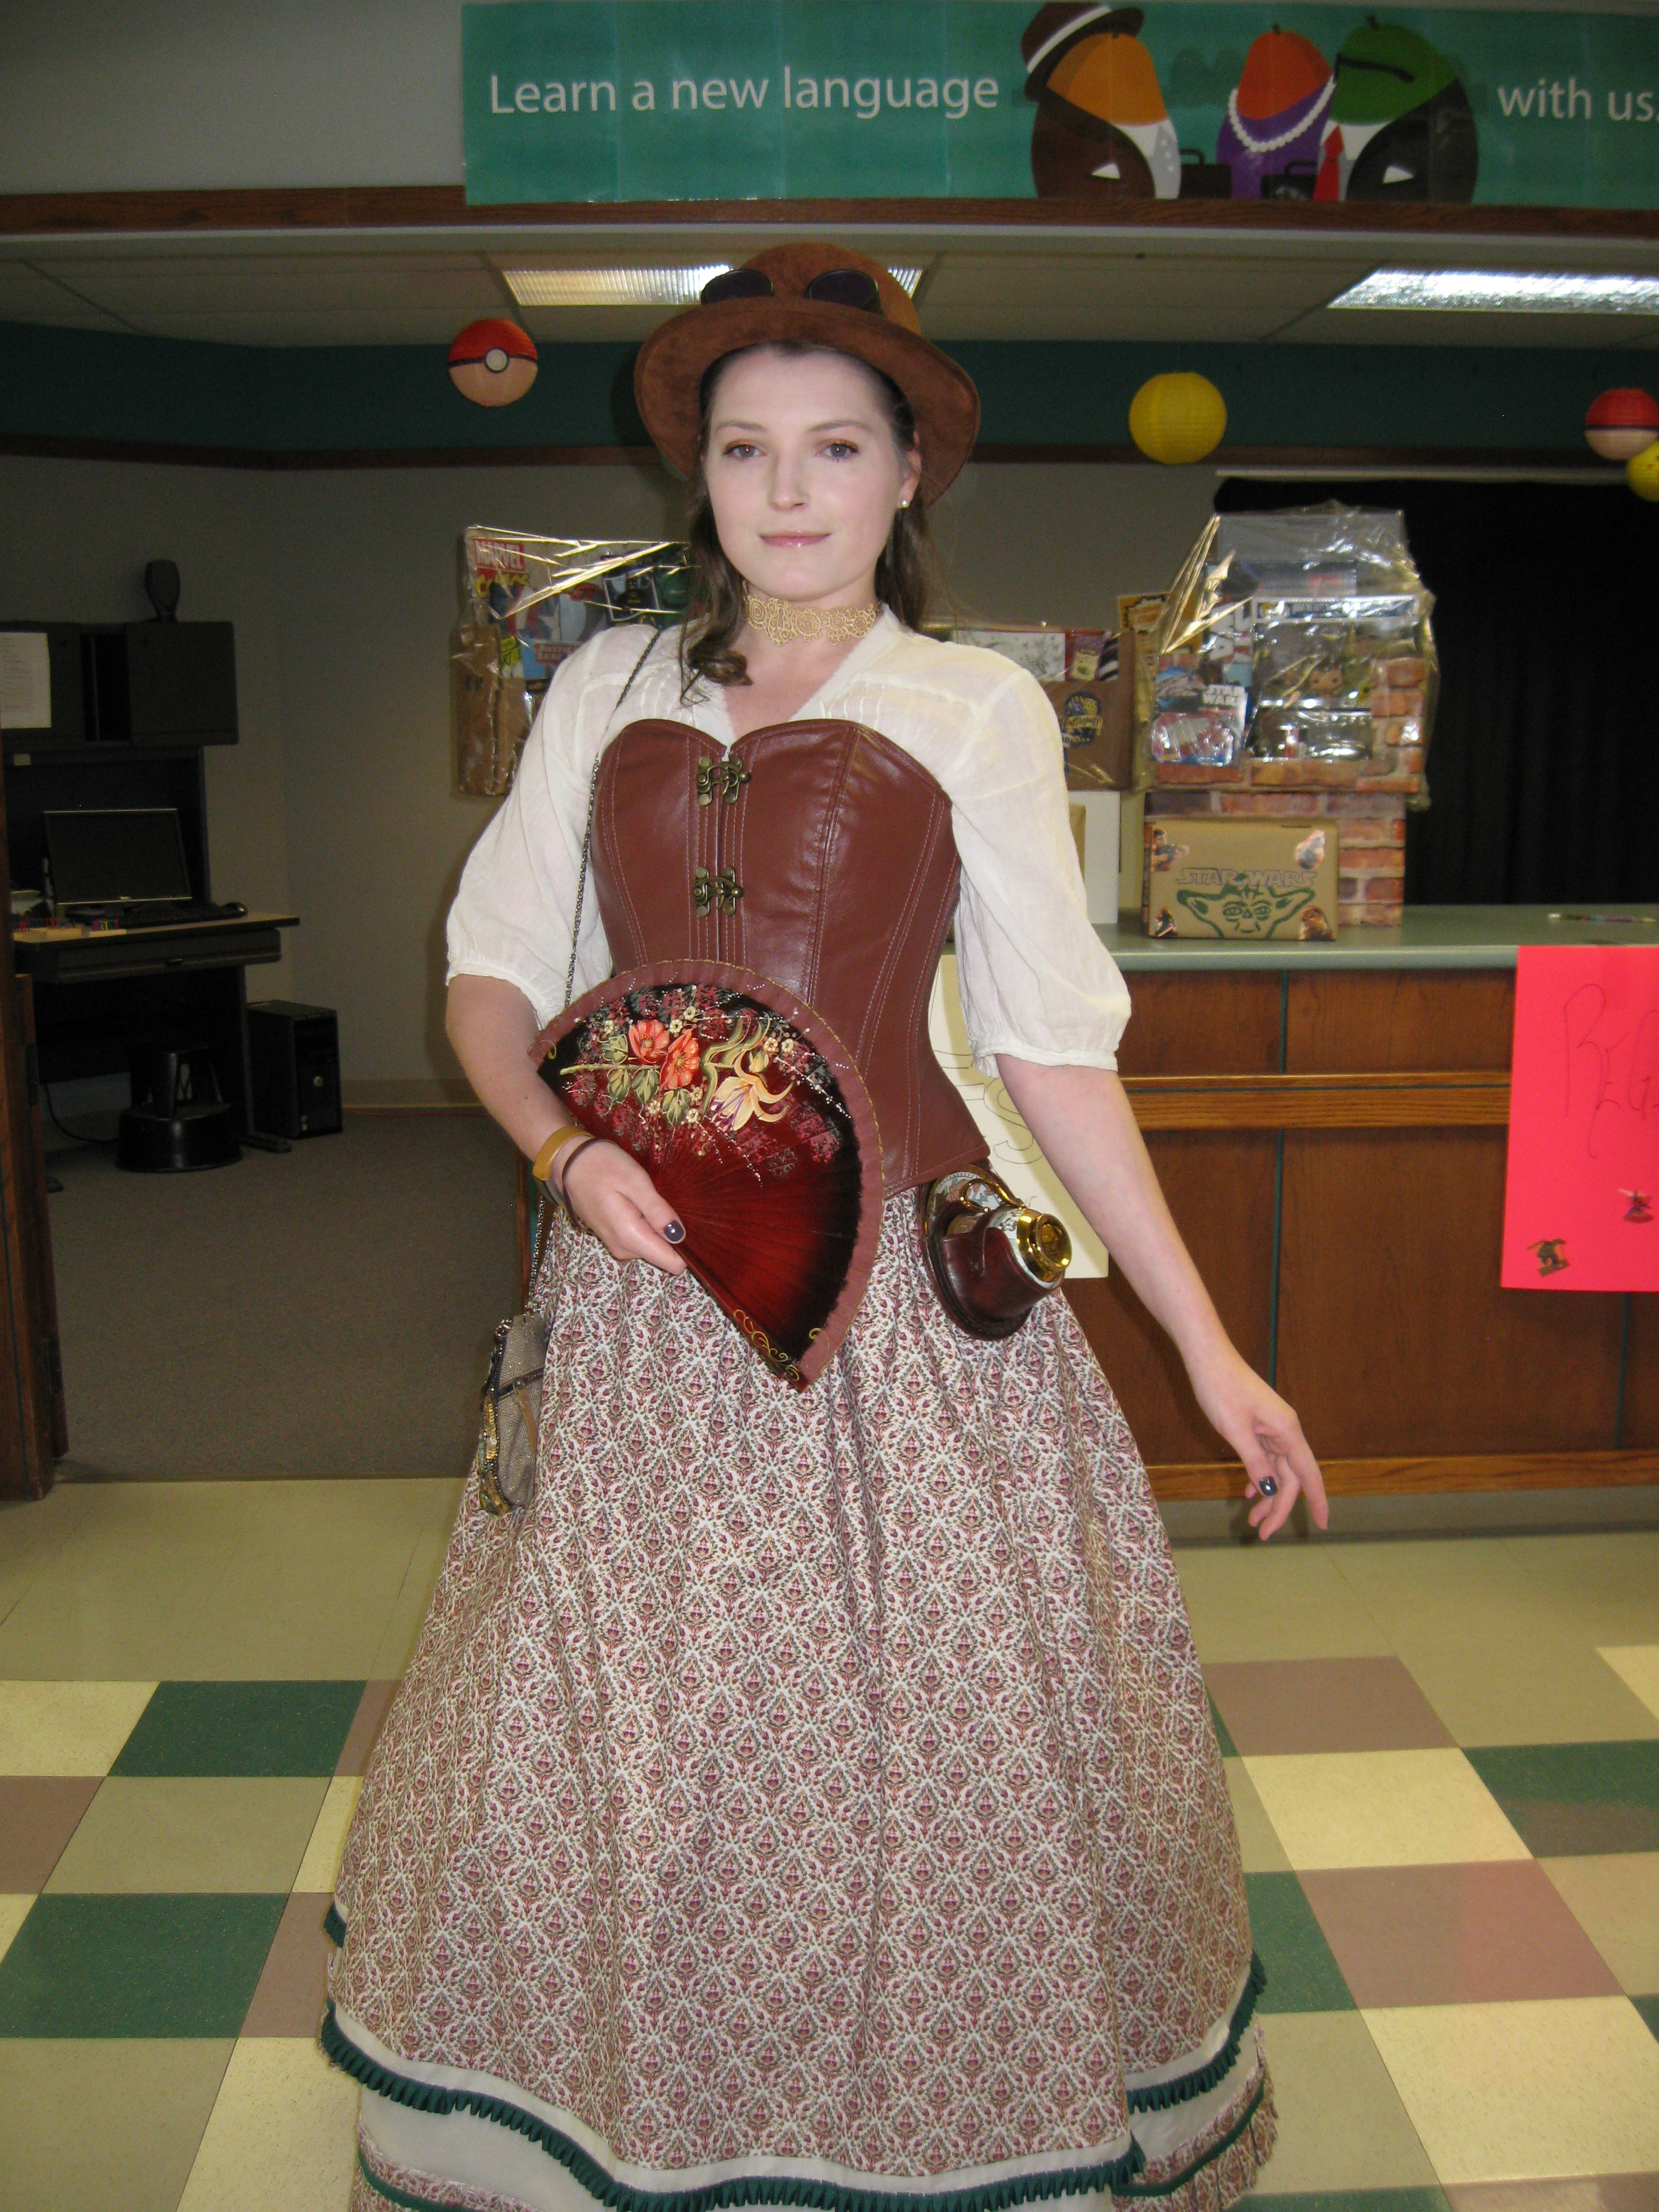 Woman in Steampunk Costume -  Hutchens Library, SBU, 2017